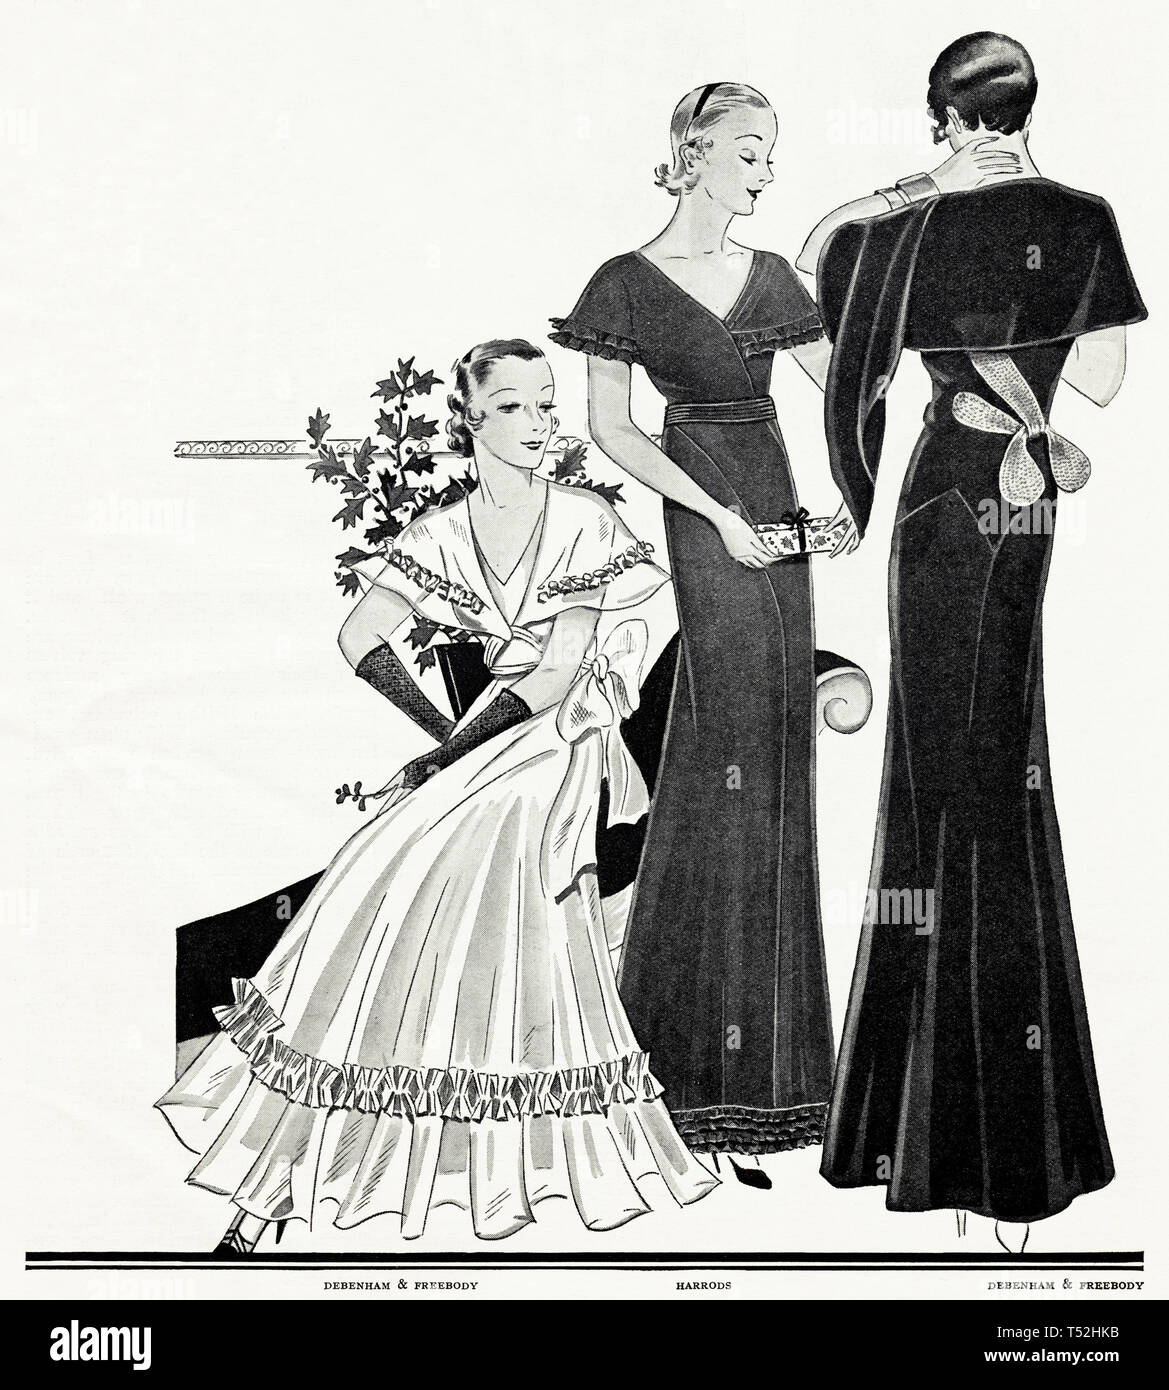 Original 1930s vintage old print illustration advertisement from 30s English magazine advertising Debenham & Freebody + Harrods womens fashion circa 1932 - Stock Image